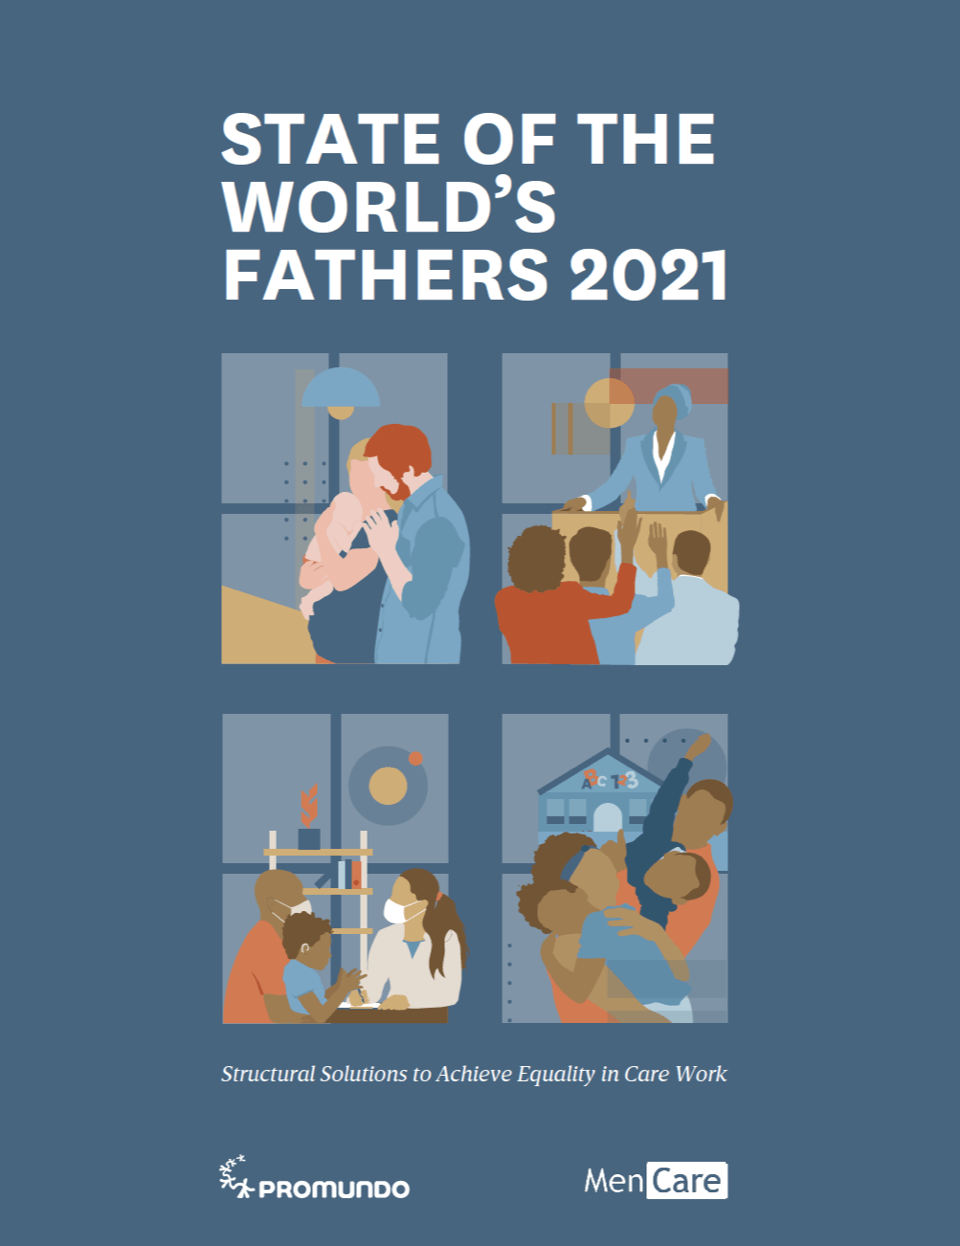 State of the World's Fathers 2021